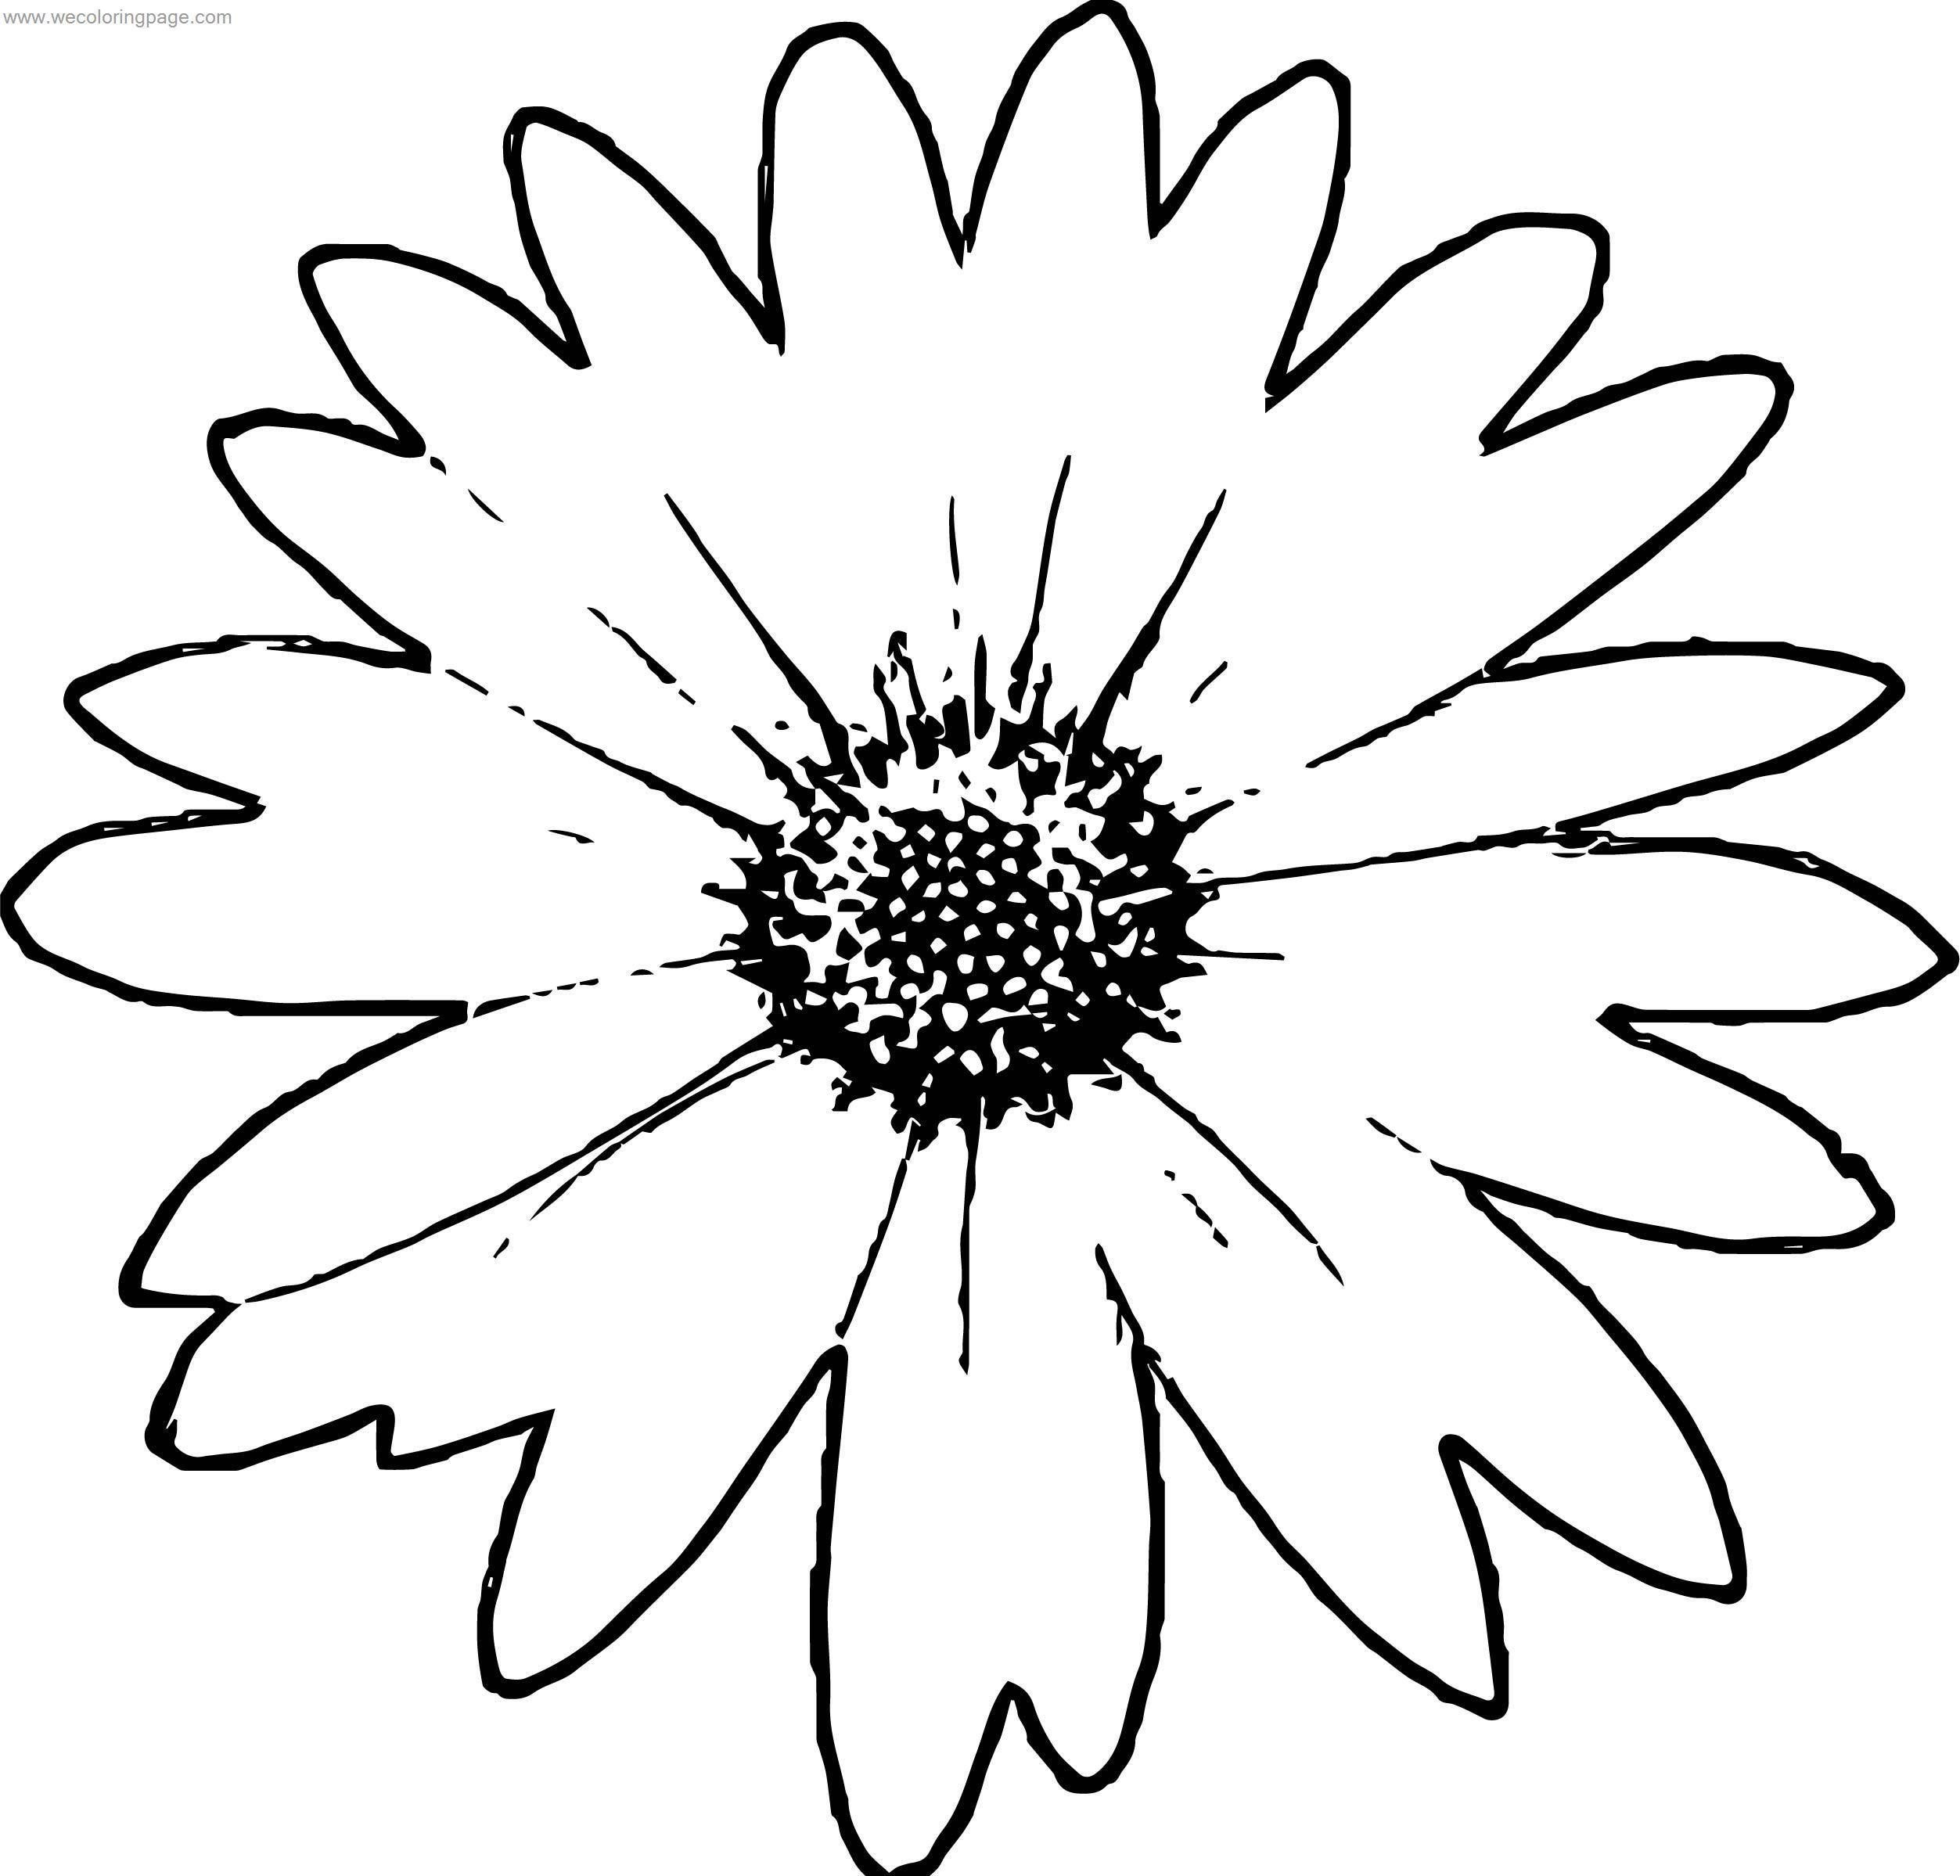 One Daisy Flower Coloring Page | Wecoloringpage.com